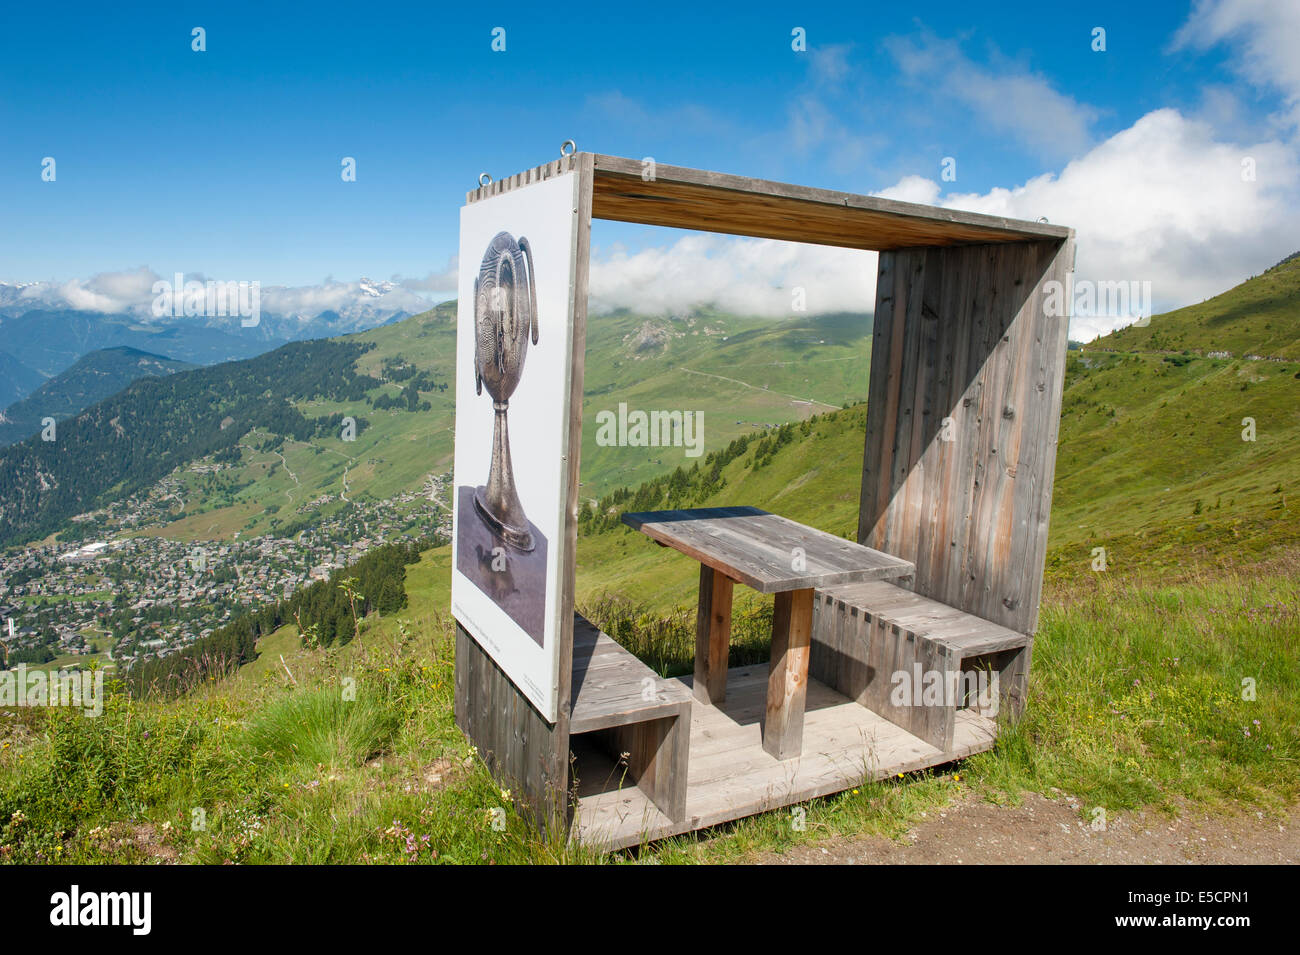 Installation on the art trail between La Chaux and Ruinette with view of Verbier, Wallis, Switzerland - Stock Image